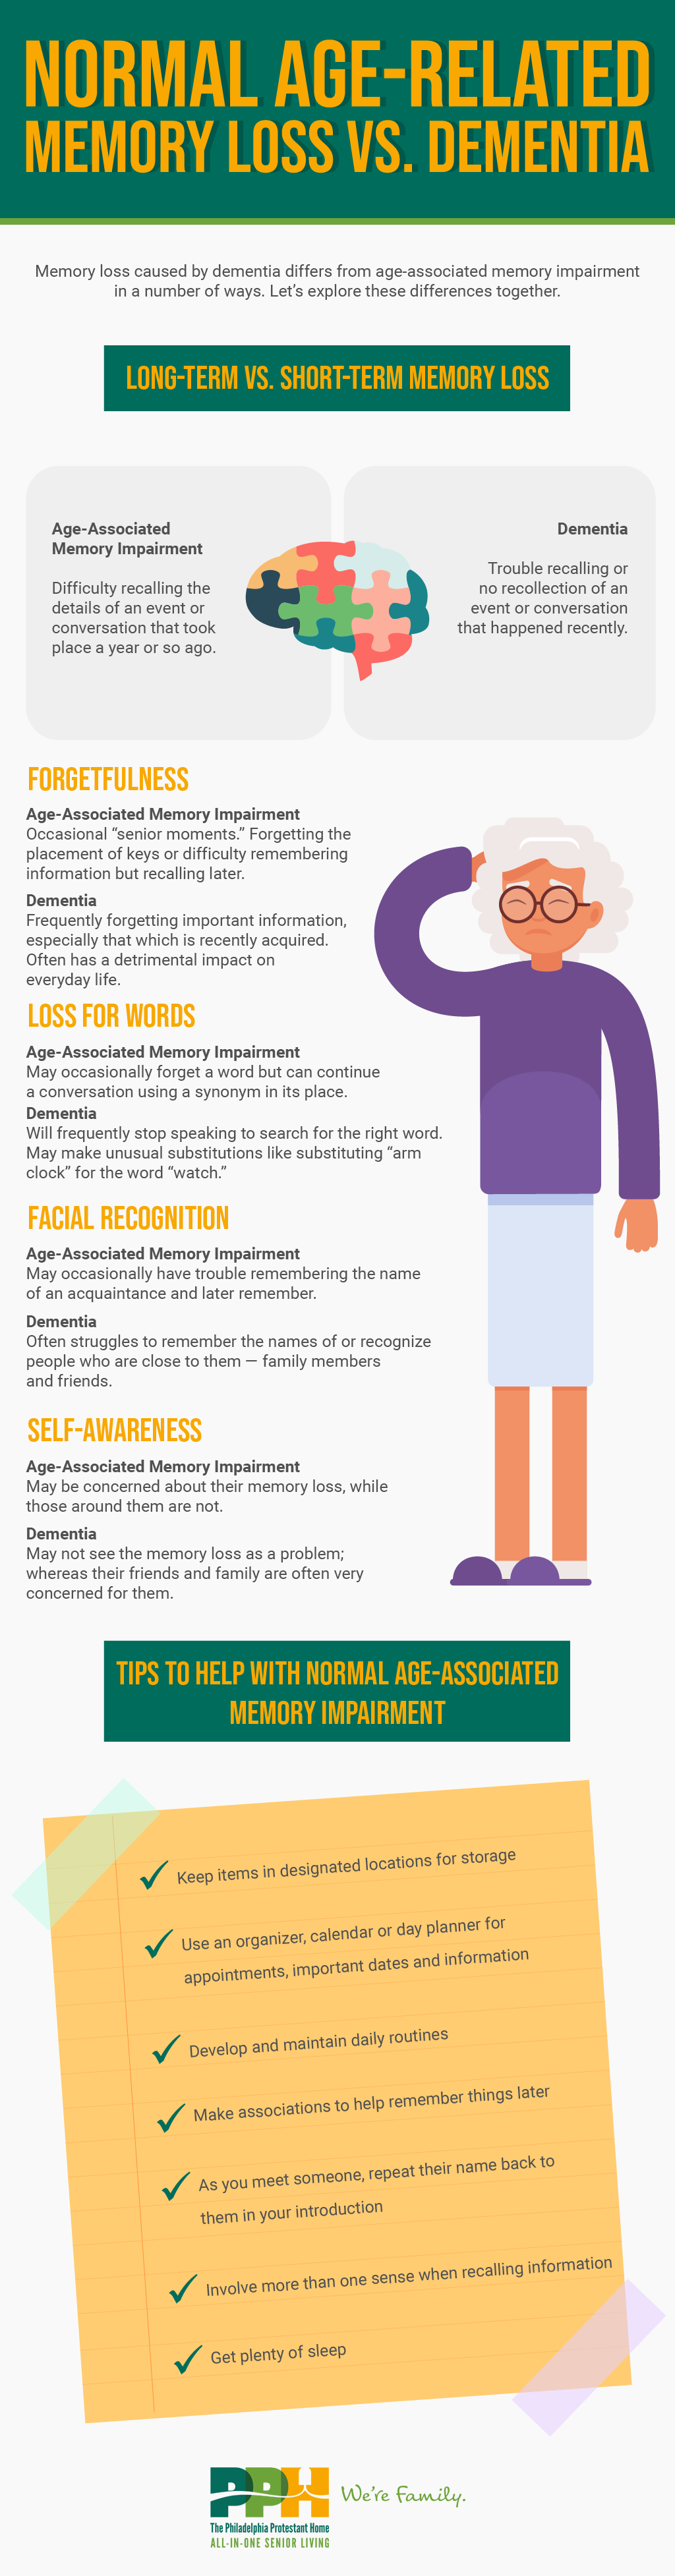 Normal Age-Related Memory Loss vs. Dementia Infographic